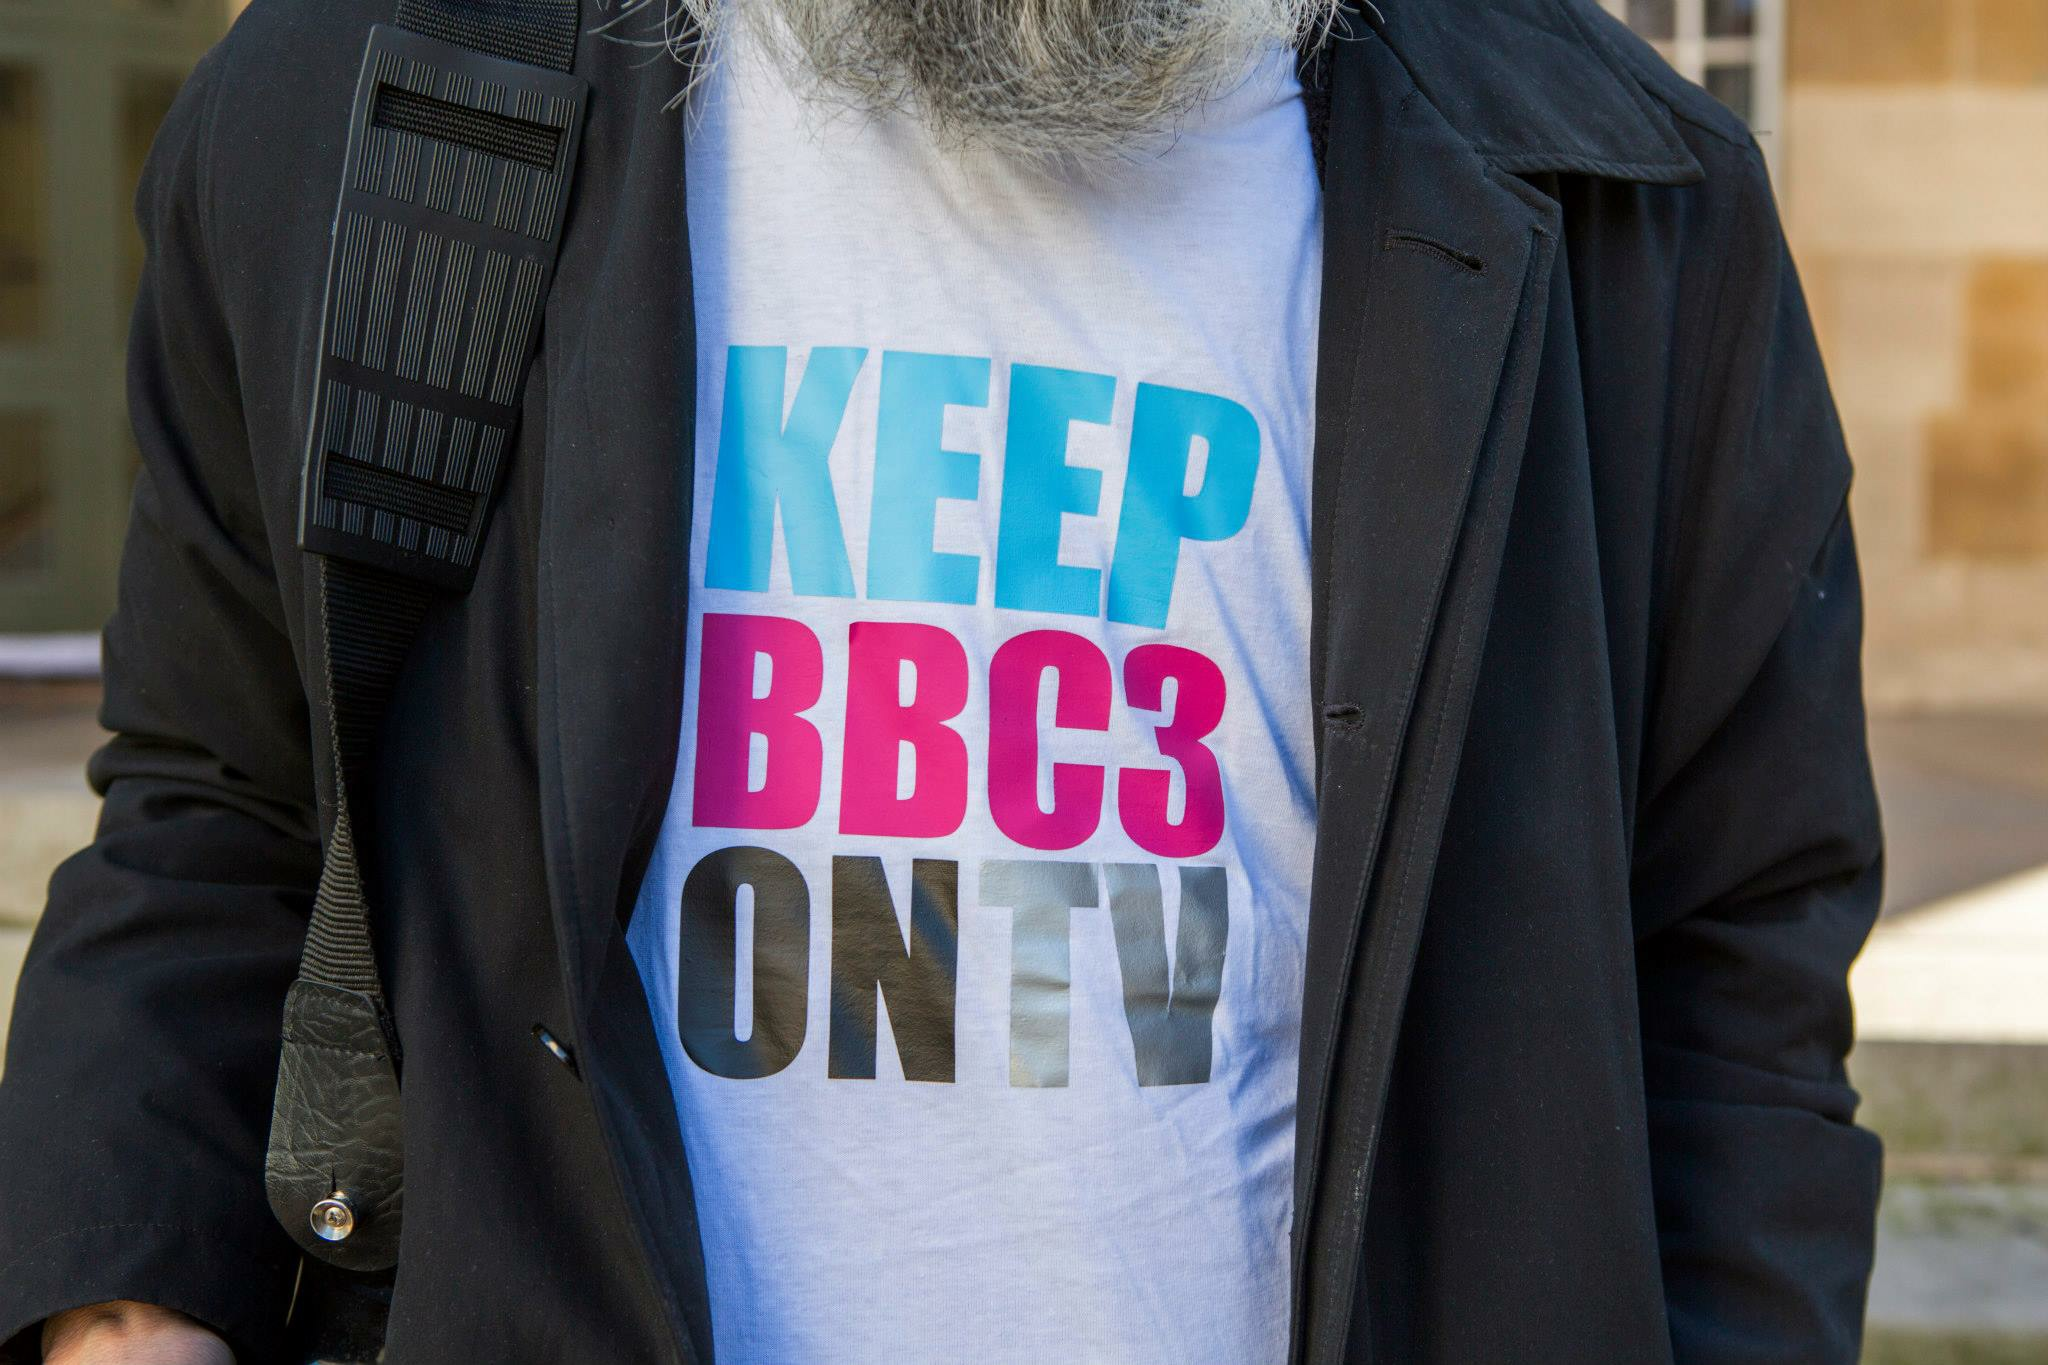 Why we're fighting to Save BBC Three